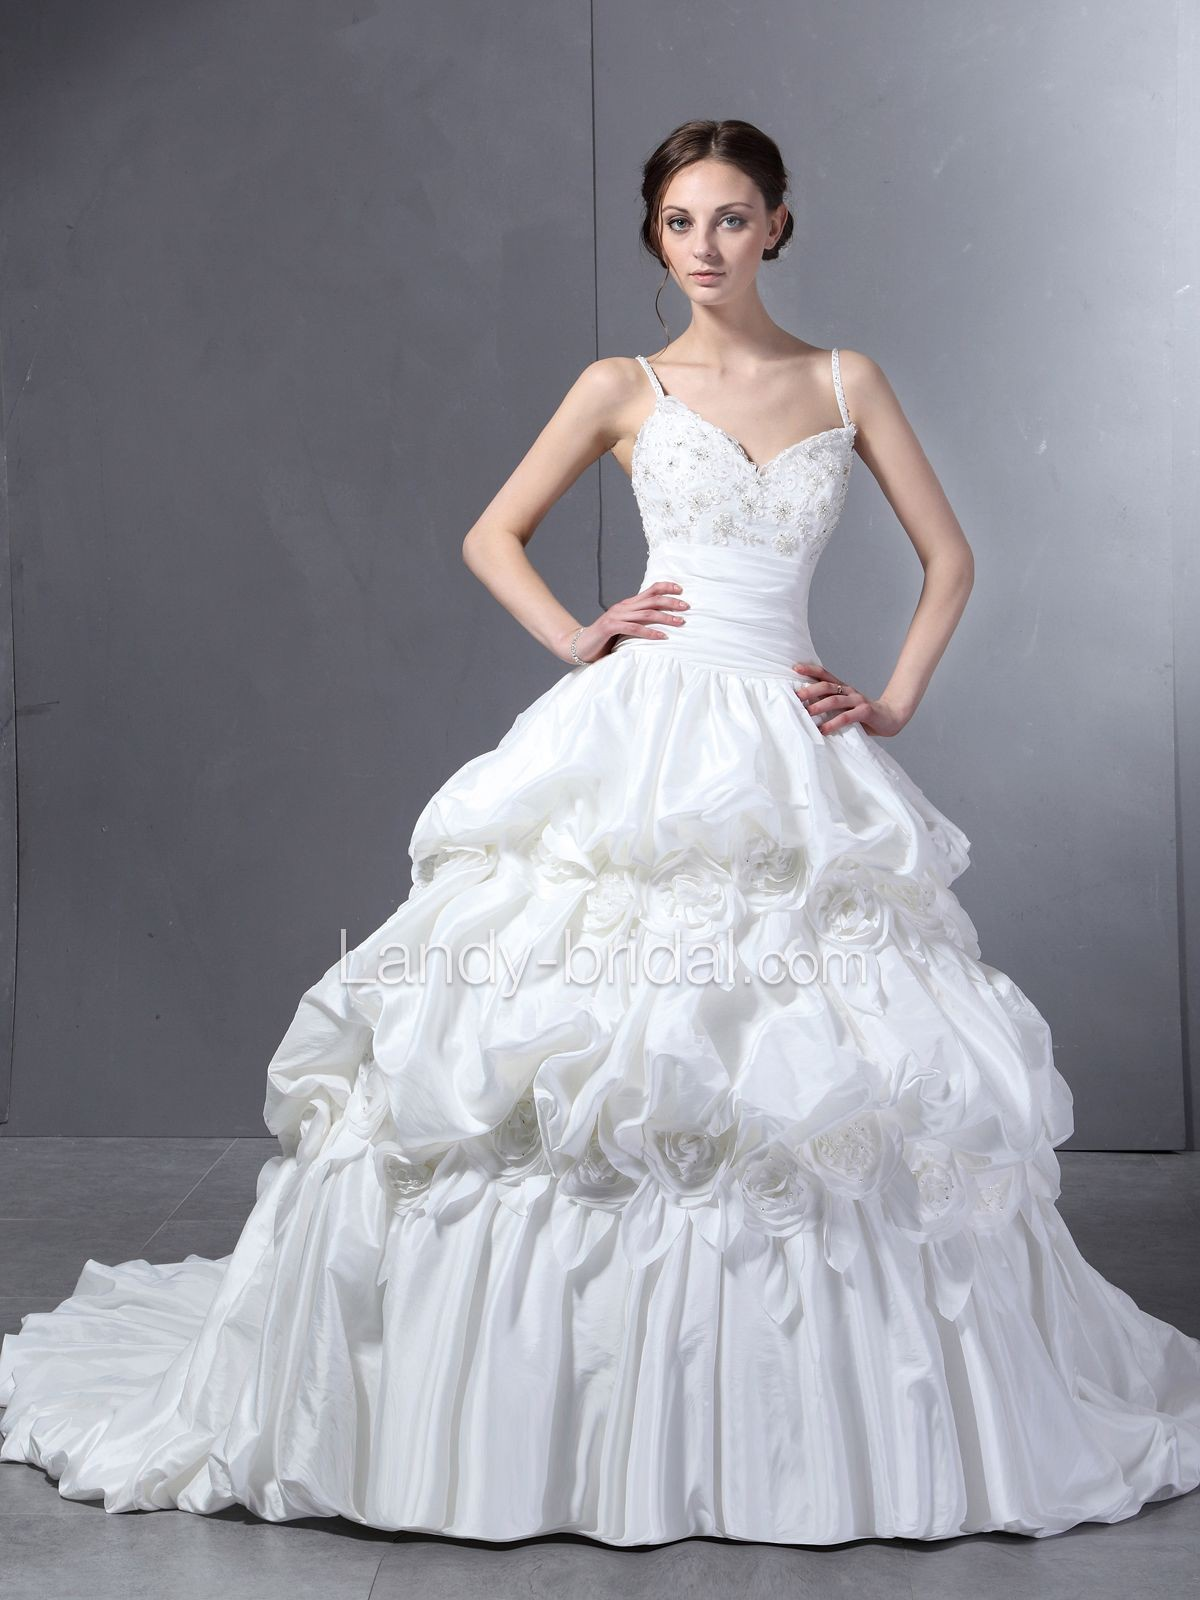 Big Women Wedding Dress